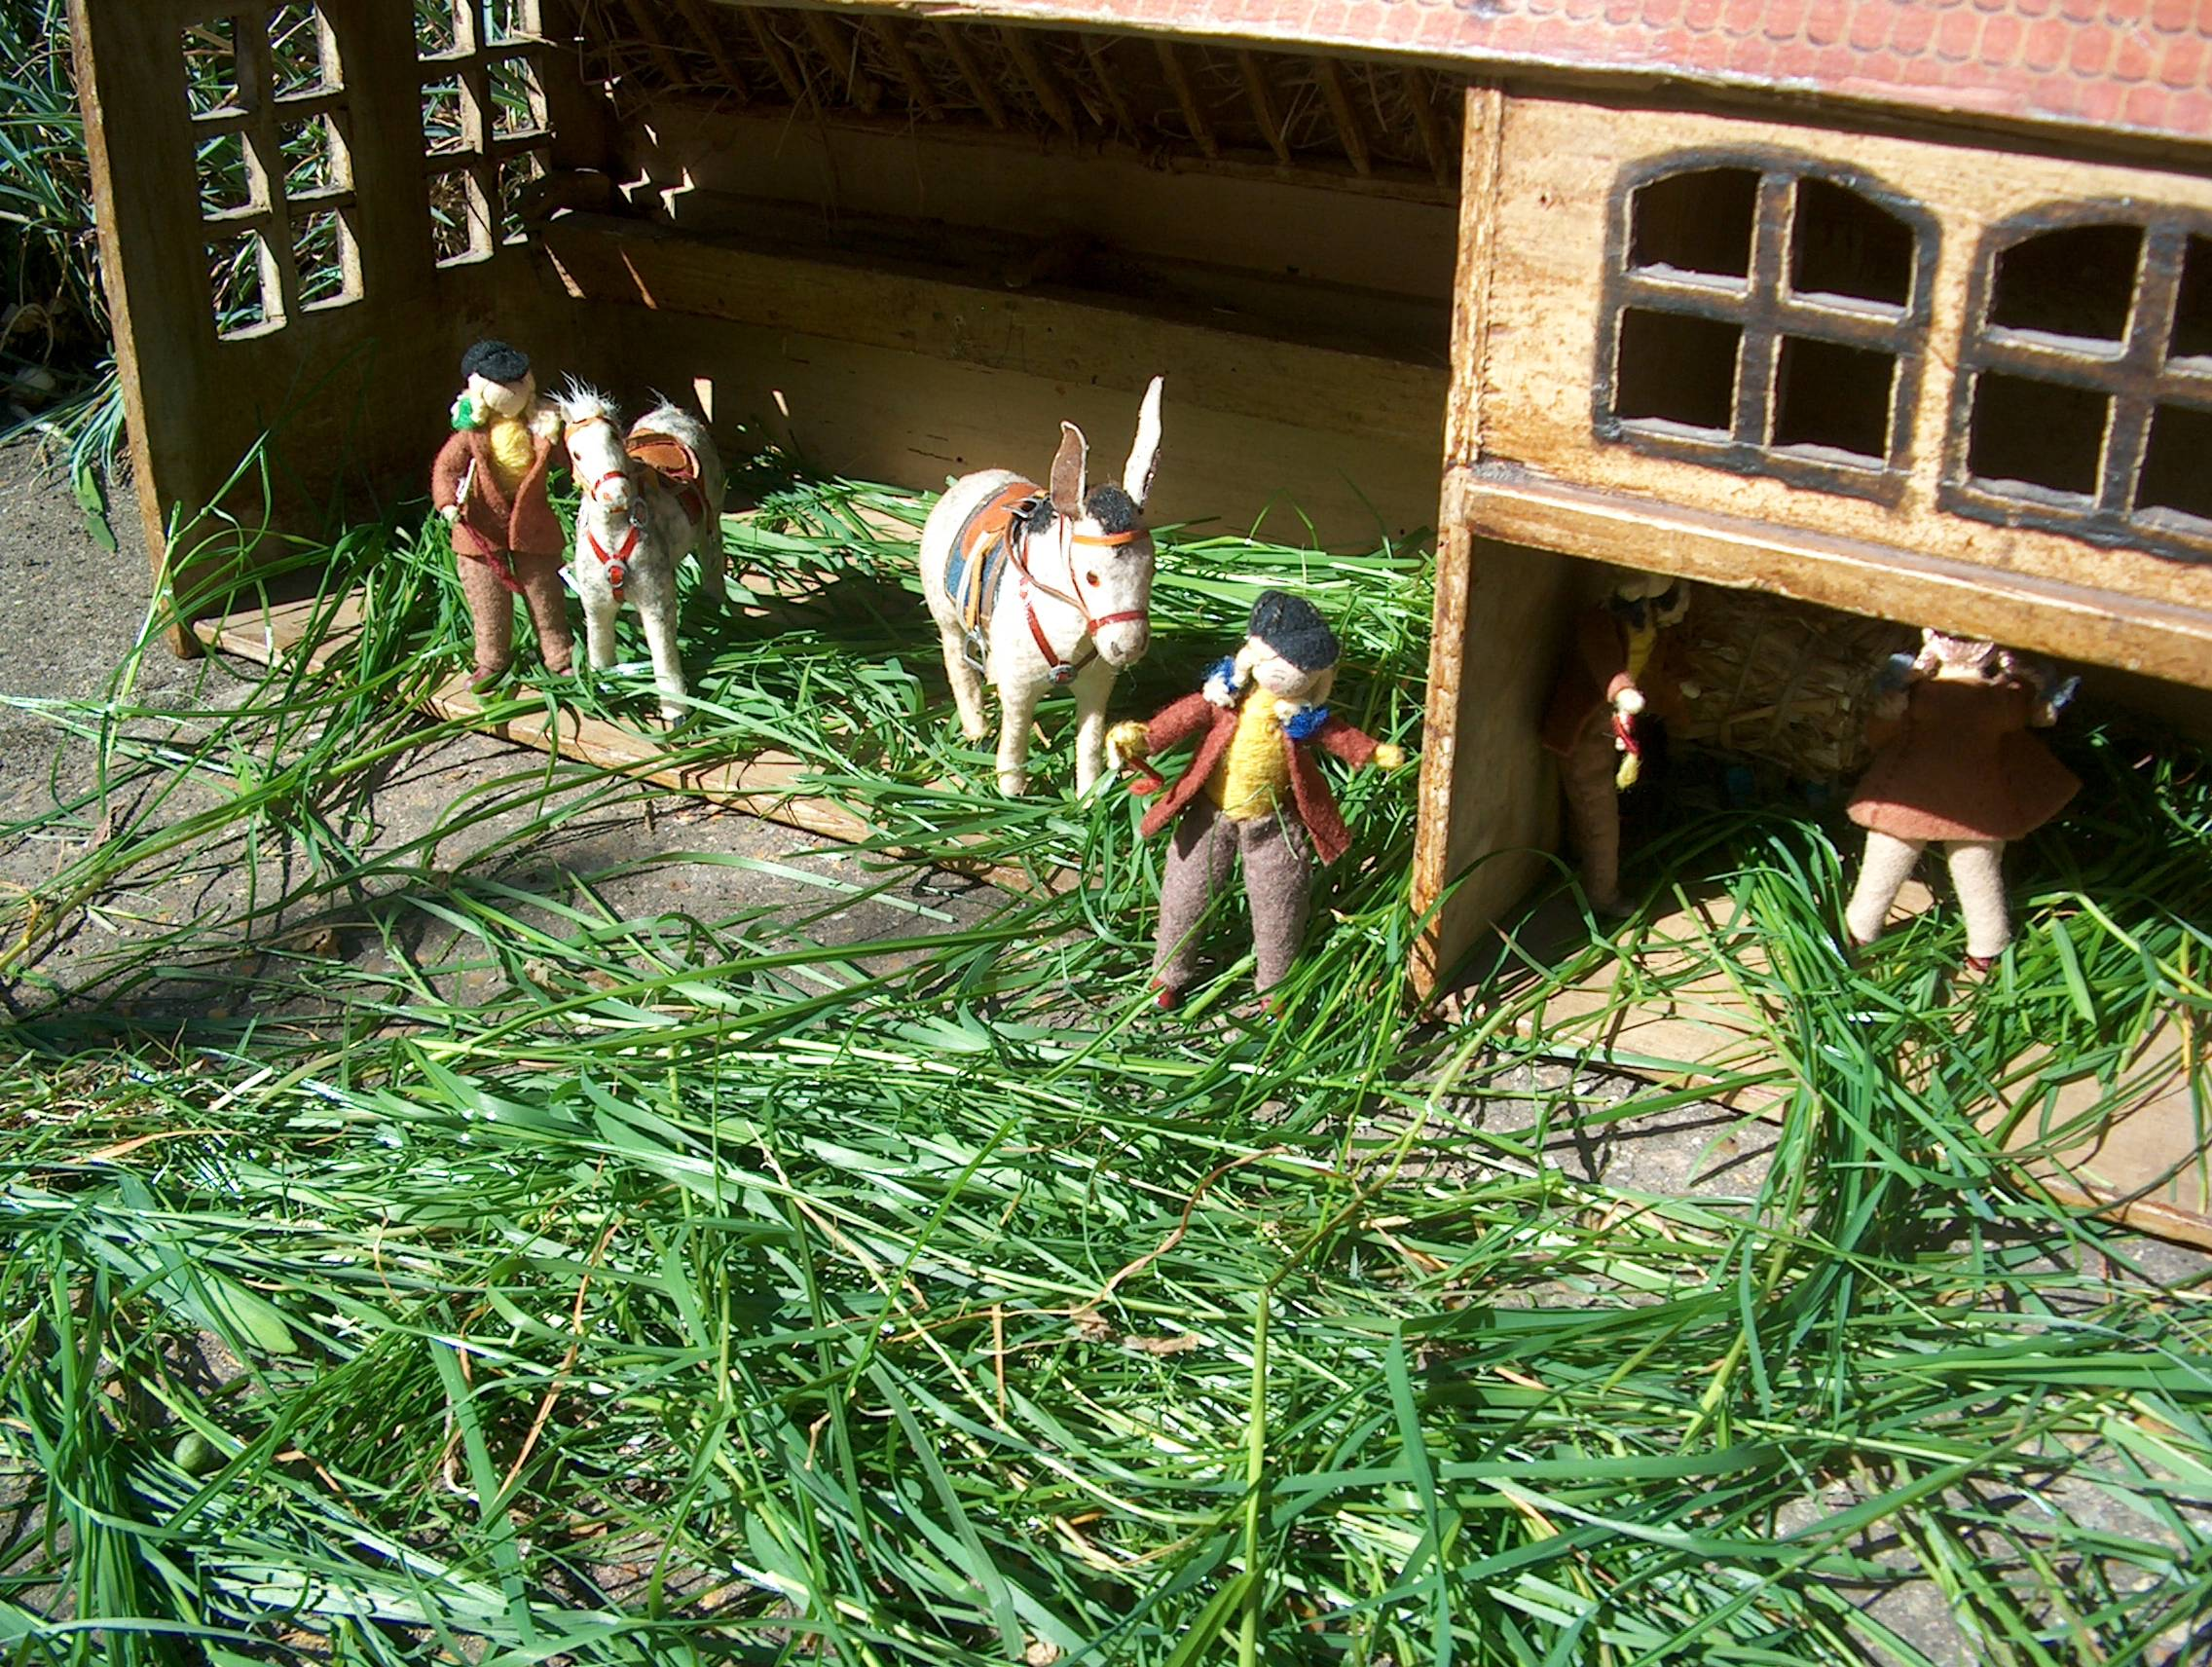 Suddenly a shrill scream came from the hayloft. Leaving the pony